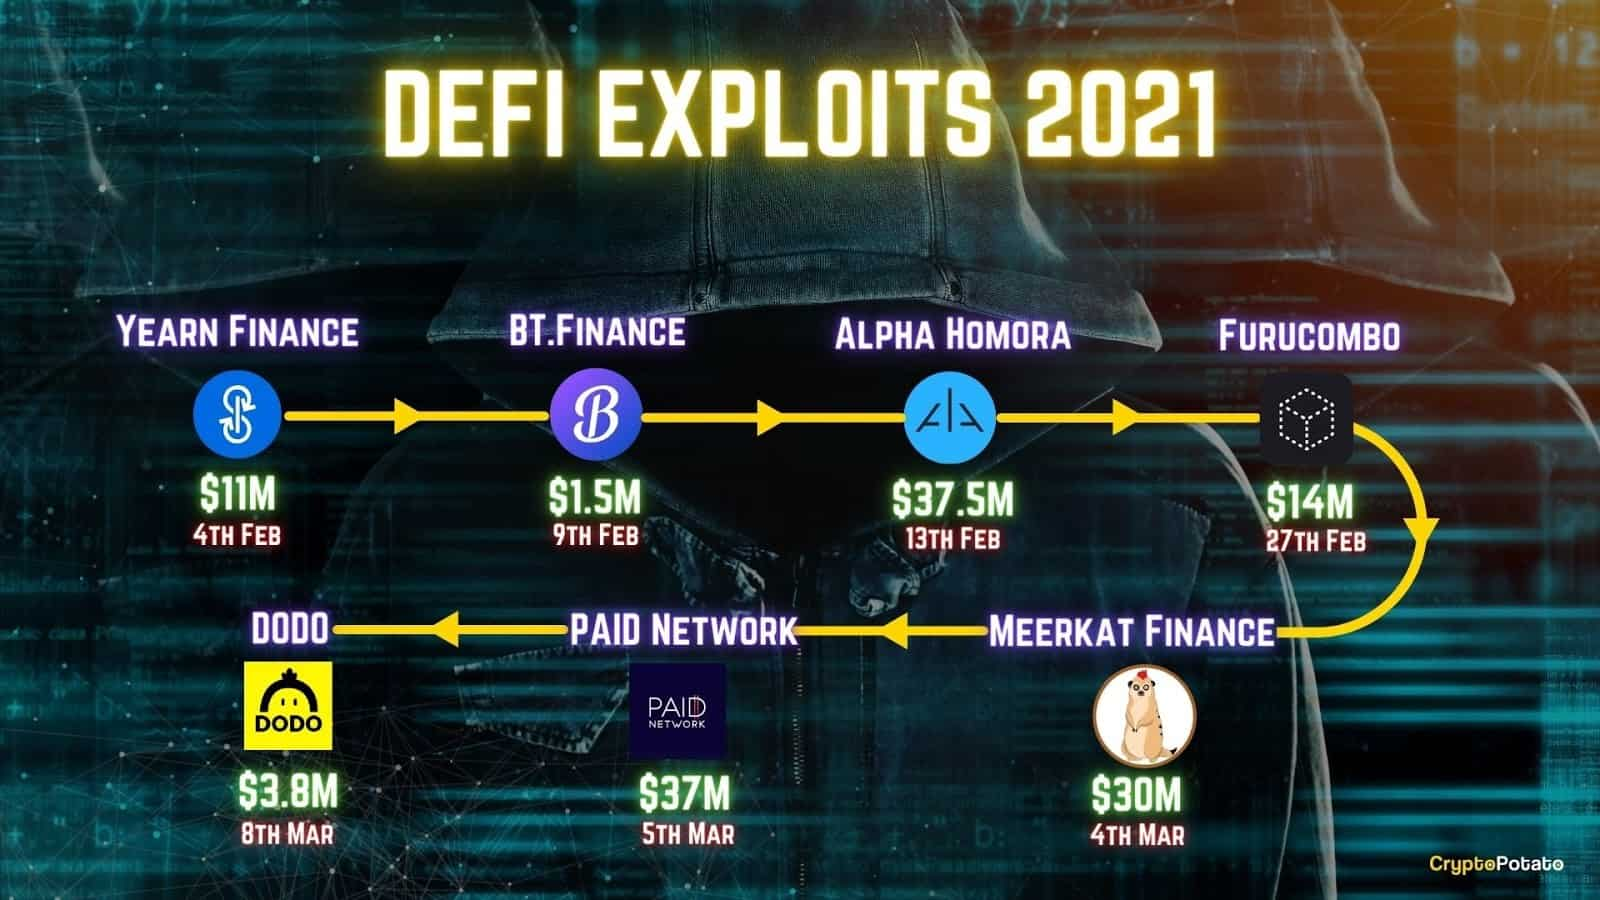 6 Ways to Avoid Losing Your Funds to DeFi Scams in 2021